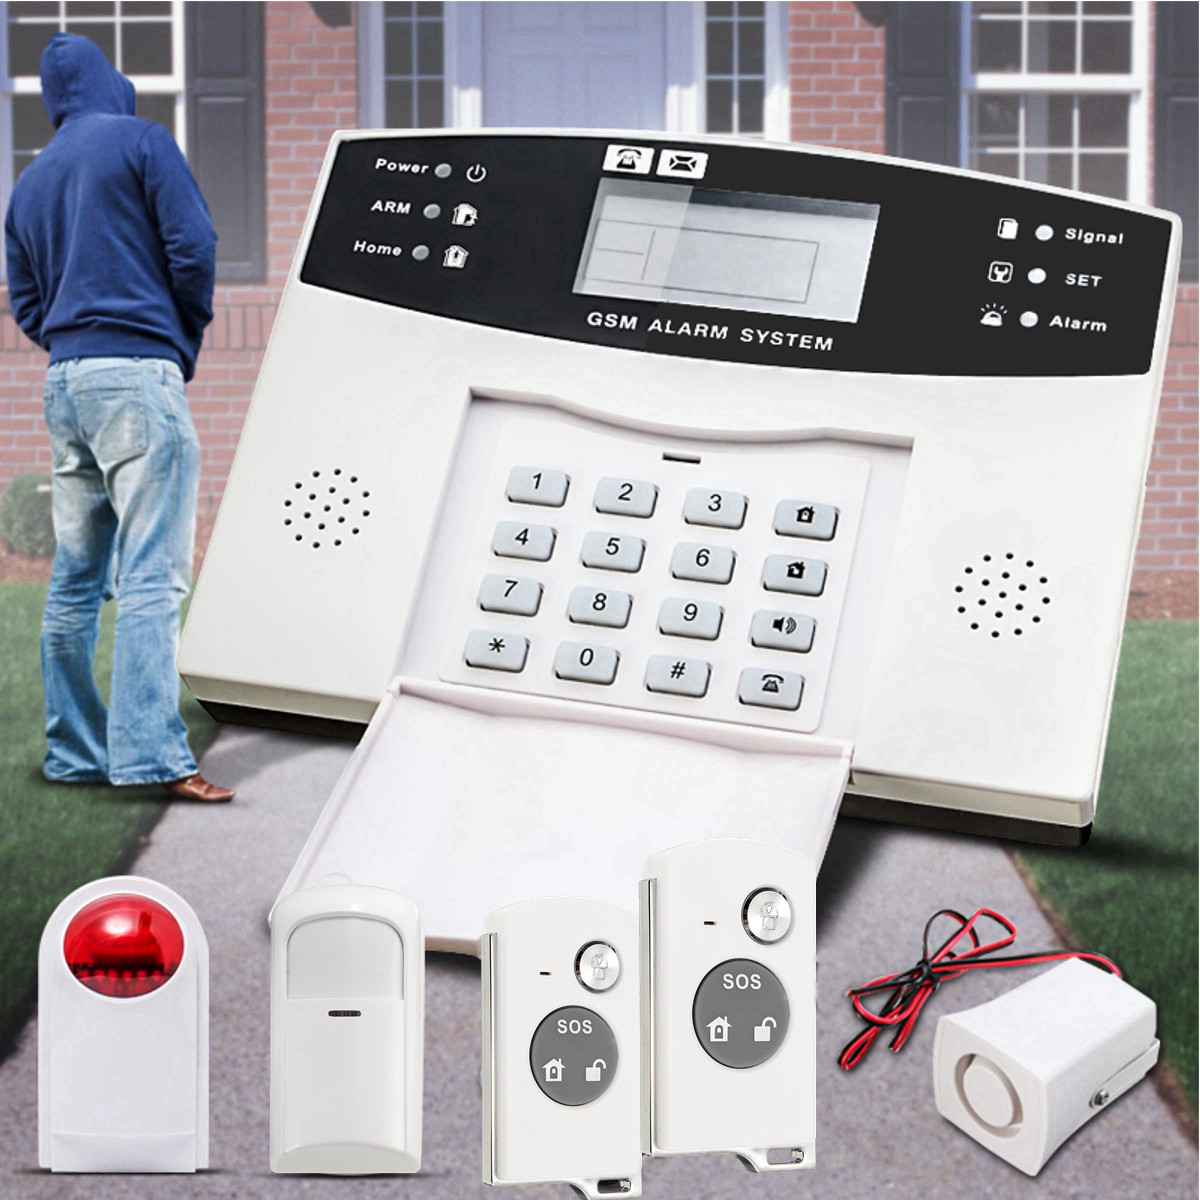 LCD Wireless GSM Auto Dial Home House Office Security Burglar Intruder Alarm System